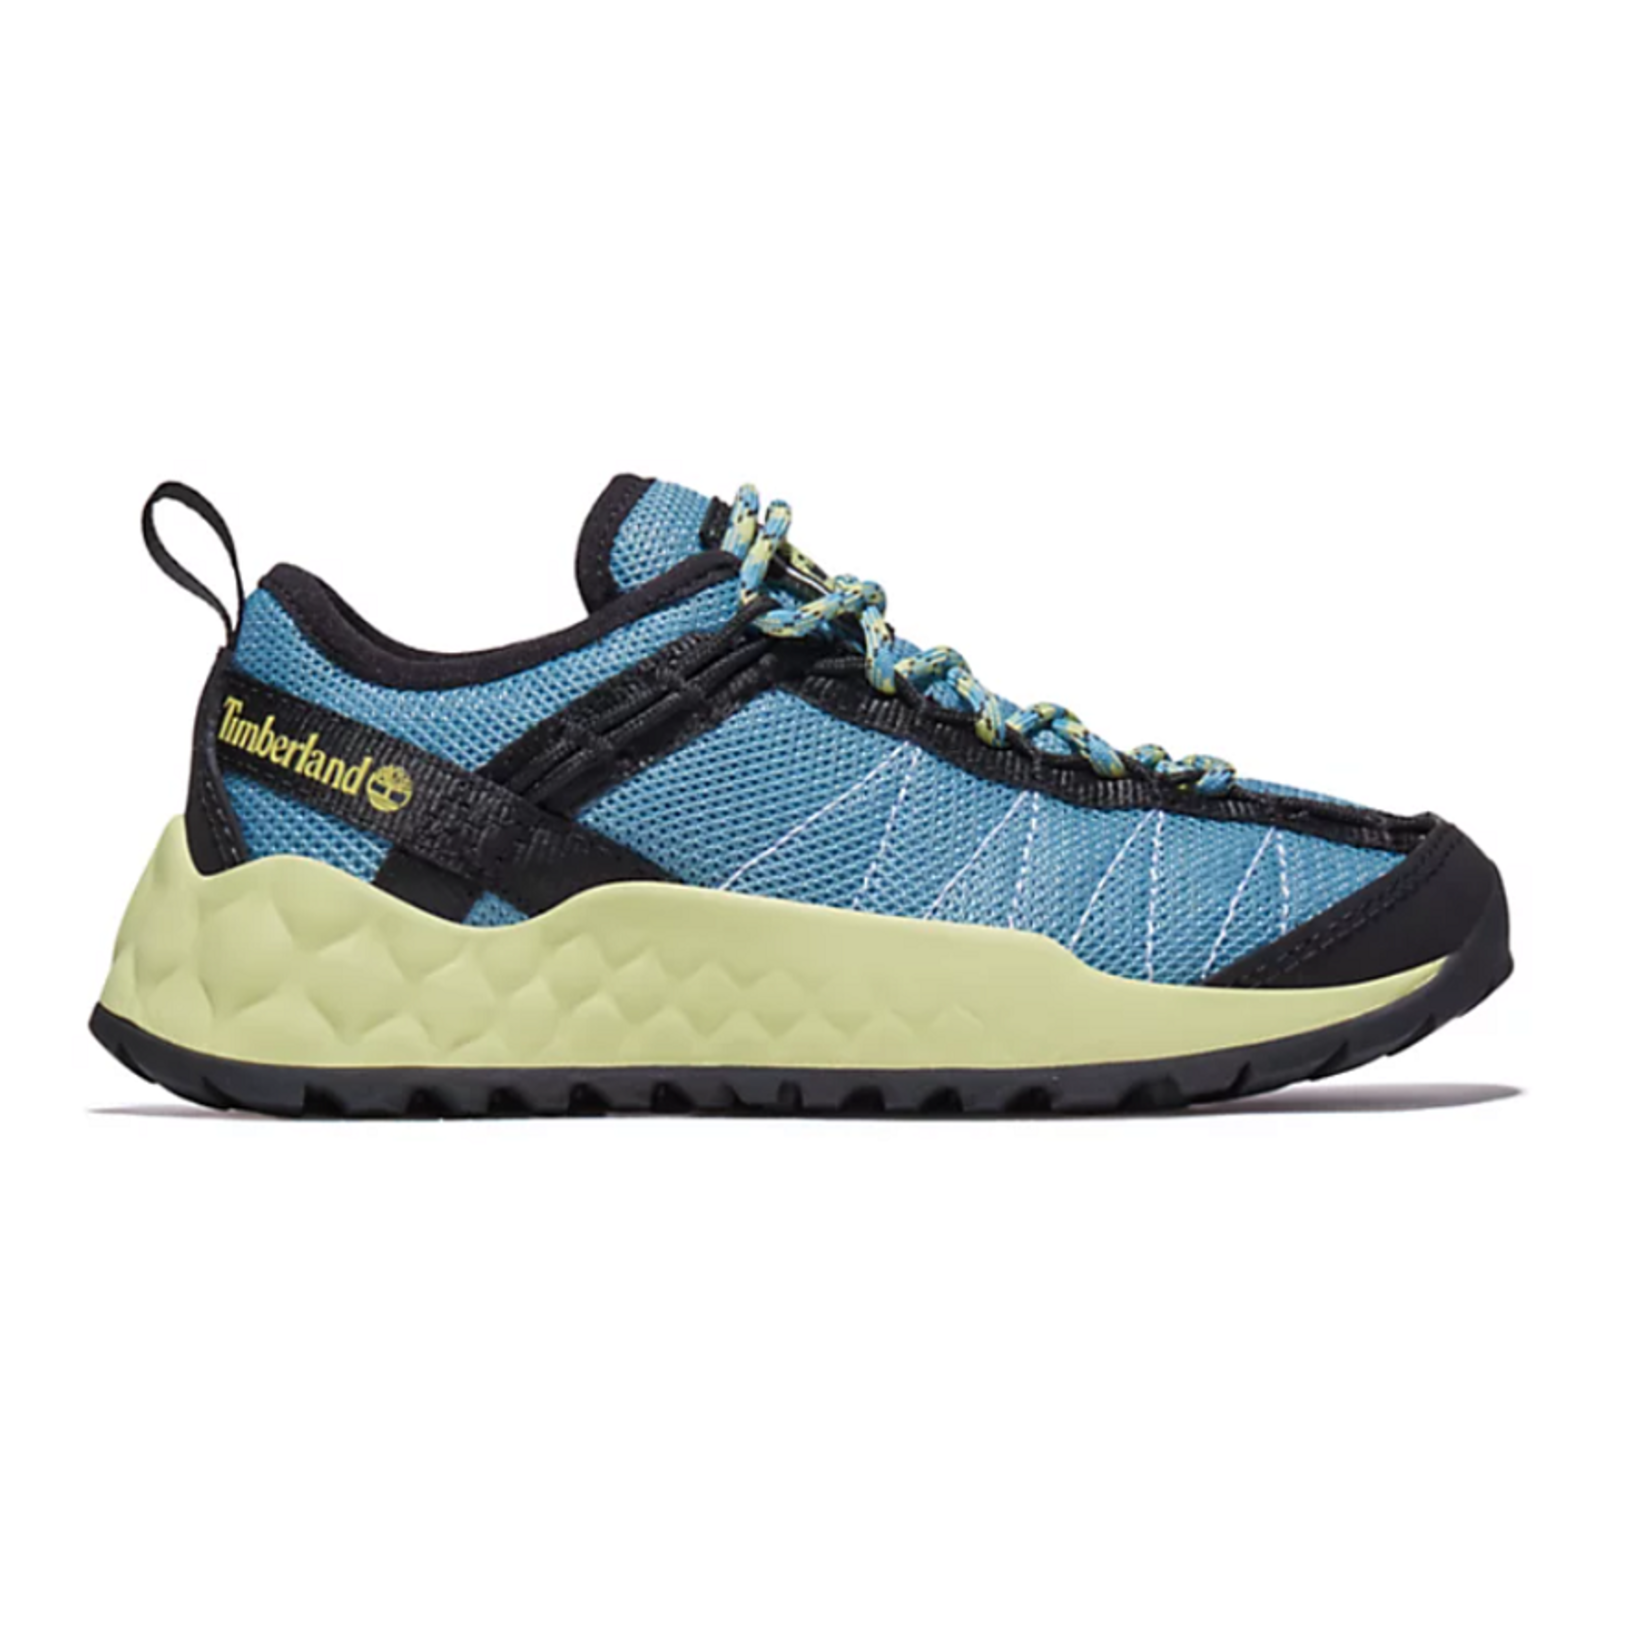 Timberland SOLAR WAVE HIKER FOR YOUTH IN BLUE